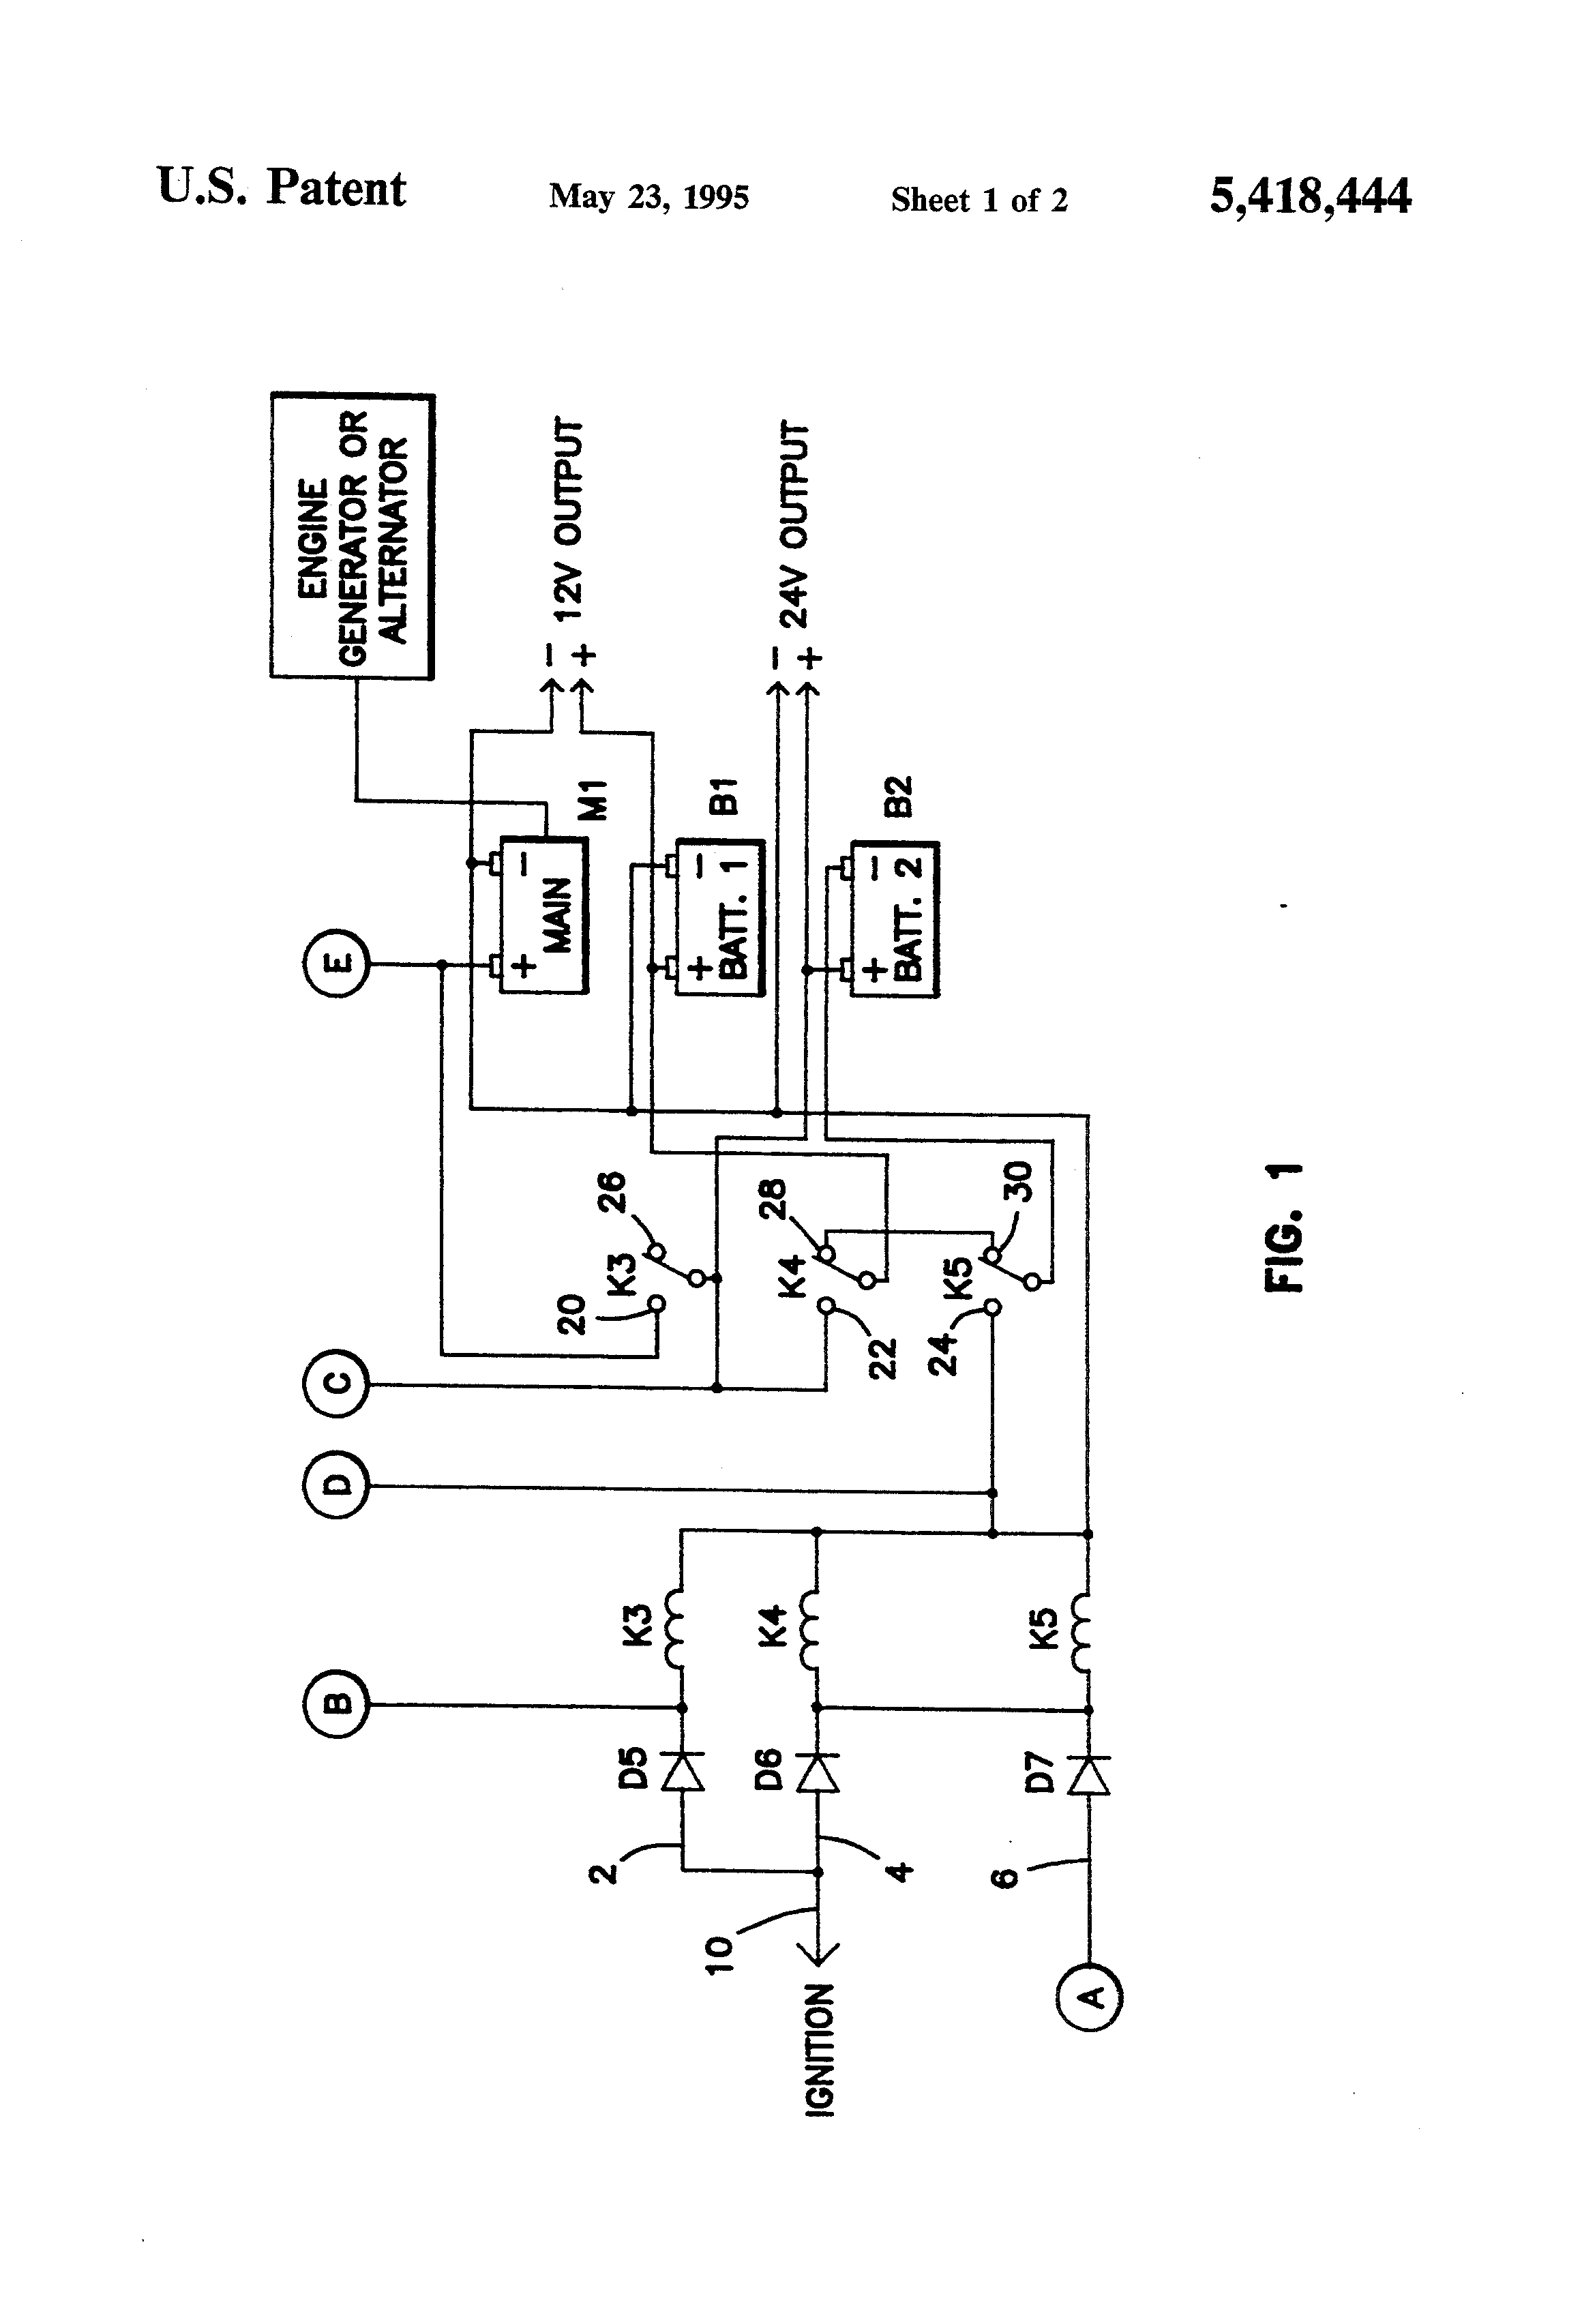 US5418444 1?resize=665%2C977 thermo king v500 wiring diagram wiring diagram thermo king v500 wiring diagram at gsmx.co